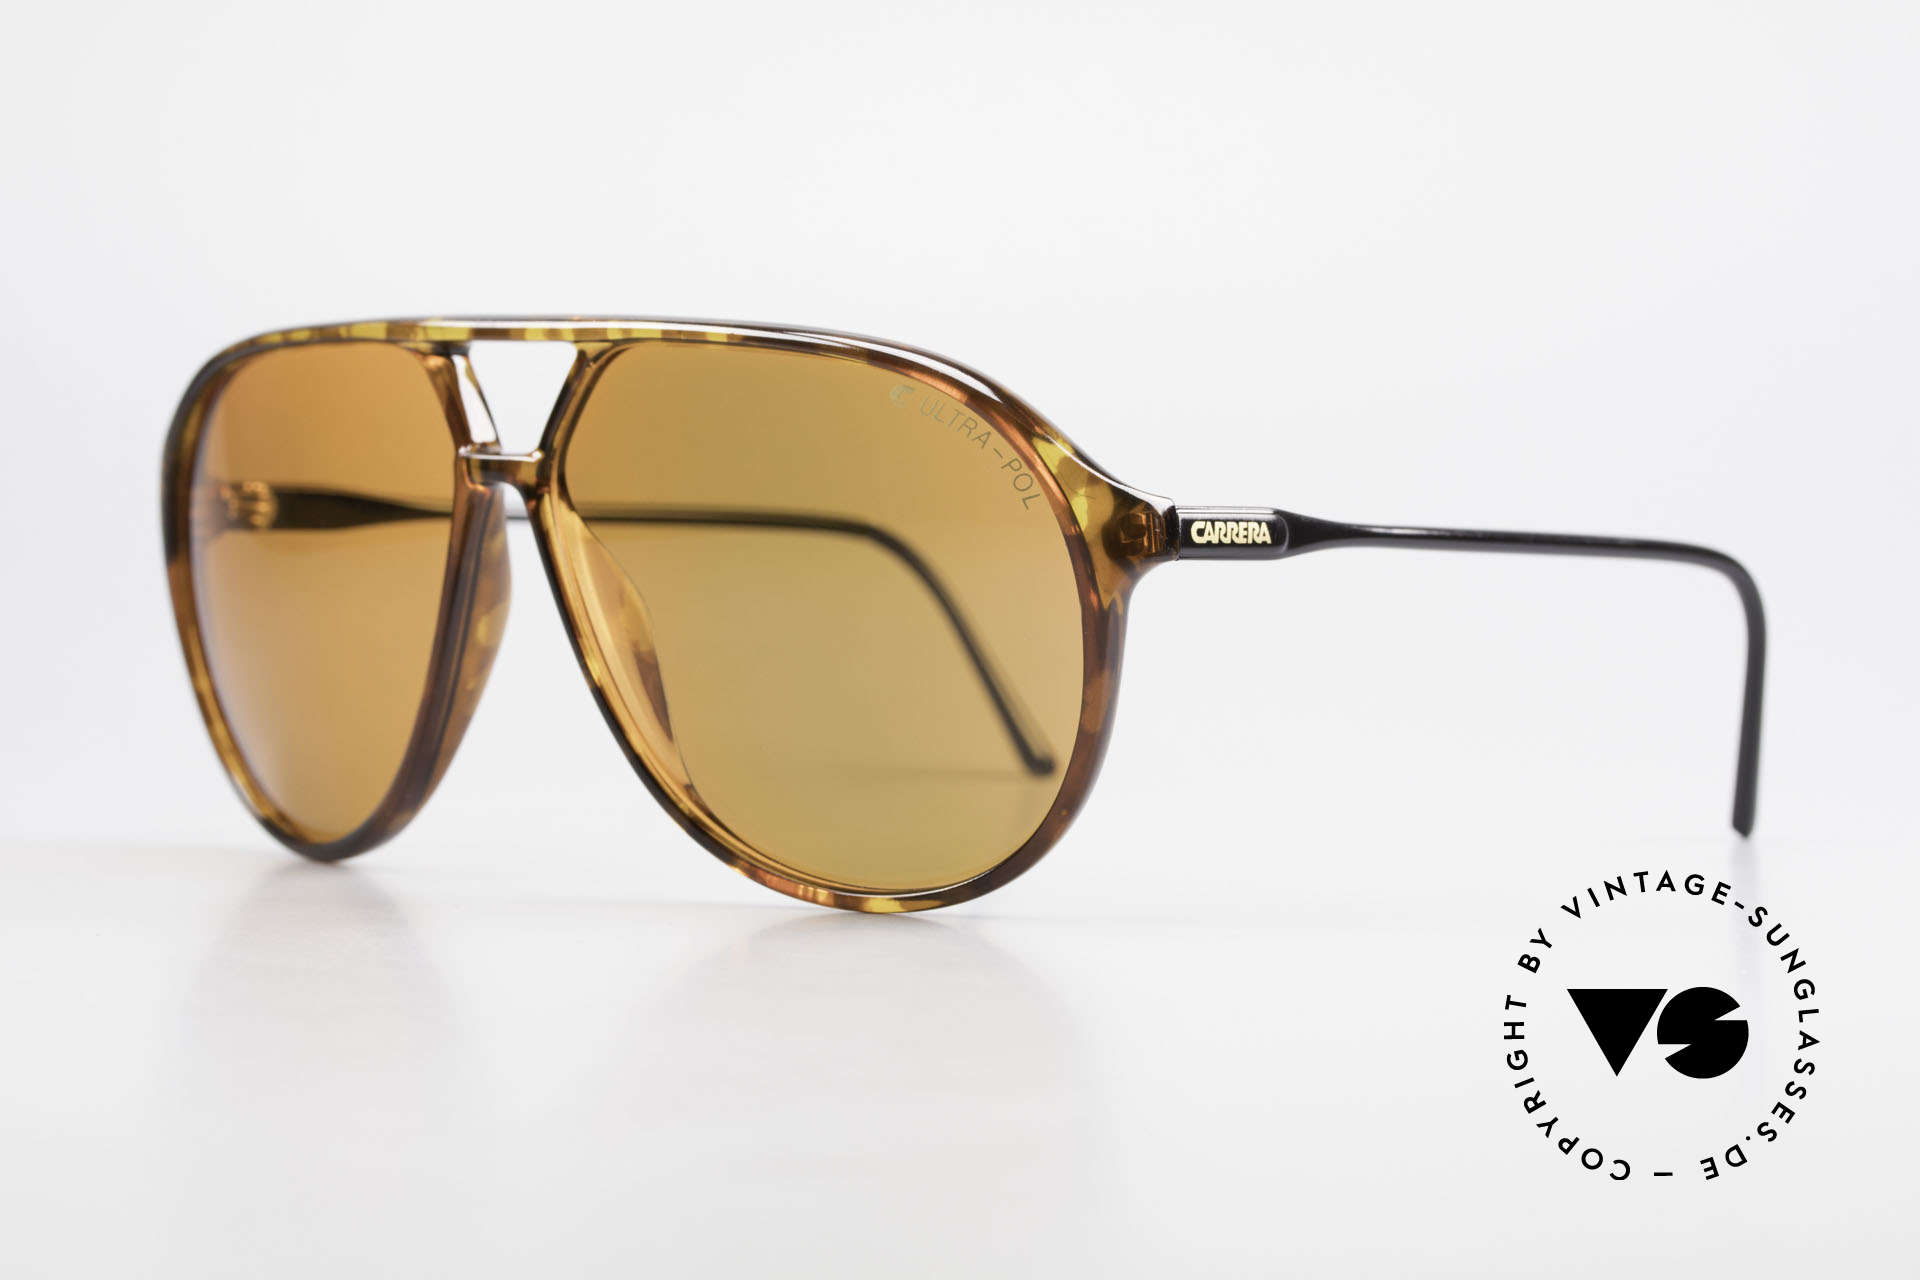 Carrera 5425 Polarized Sunglasses Aviator, sporty and functional design as quality characteristic, Made for Men